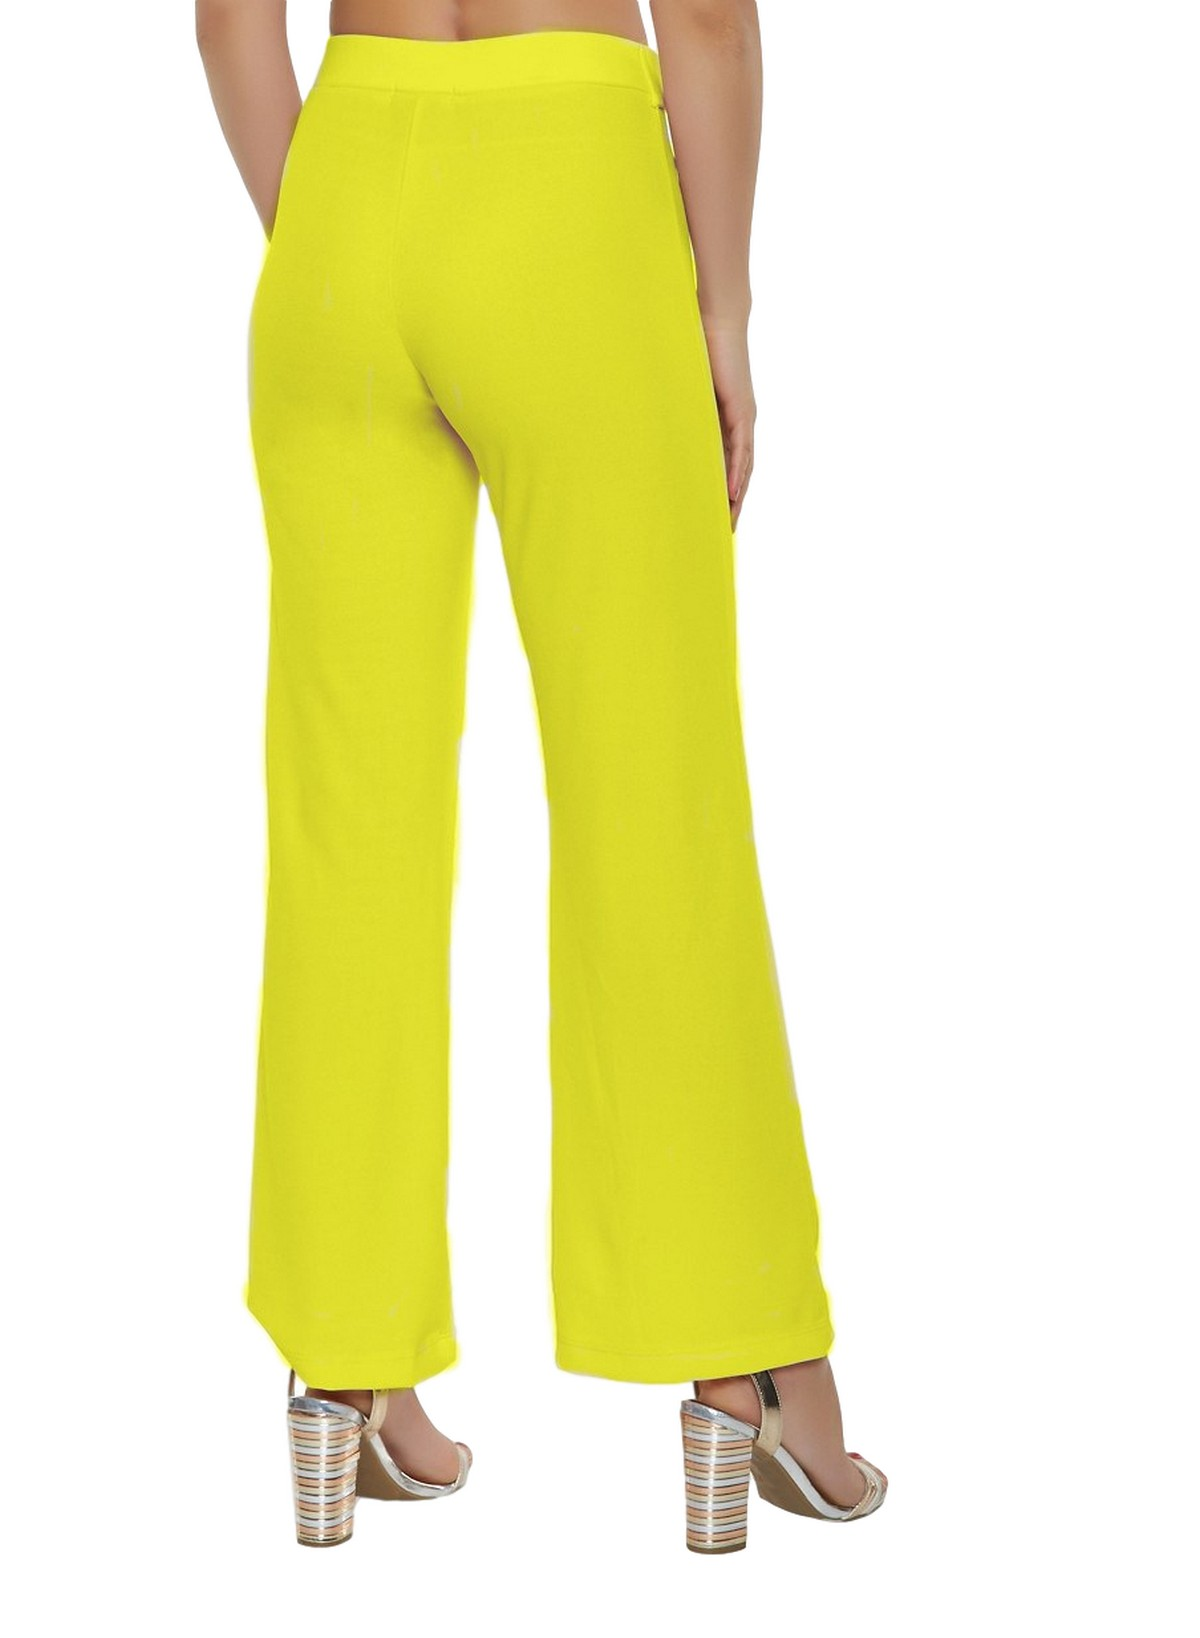 Slim Fit Culottes Trousers in Yellow